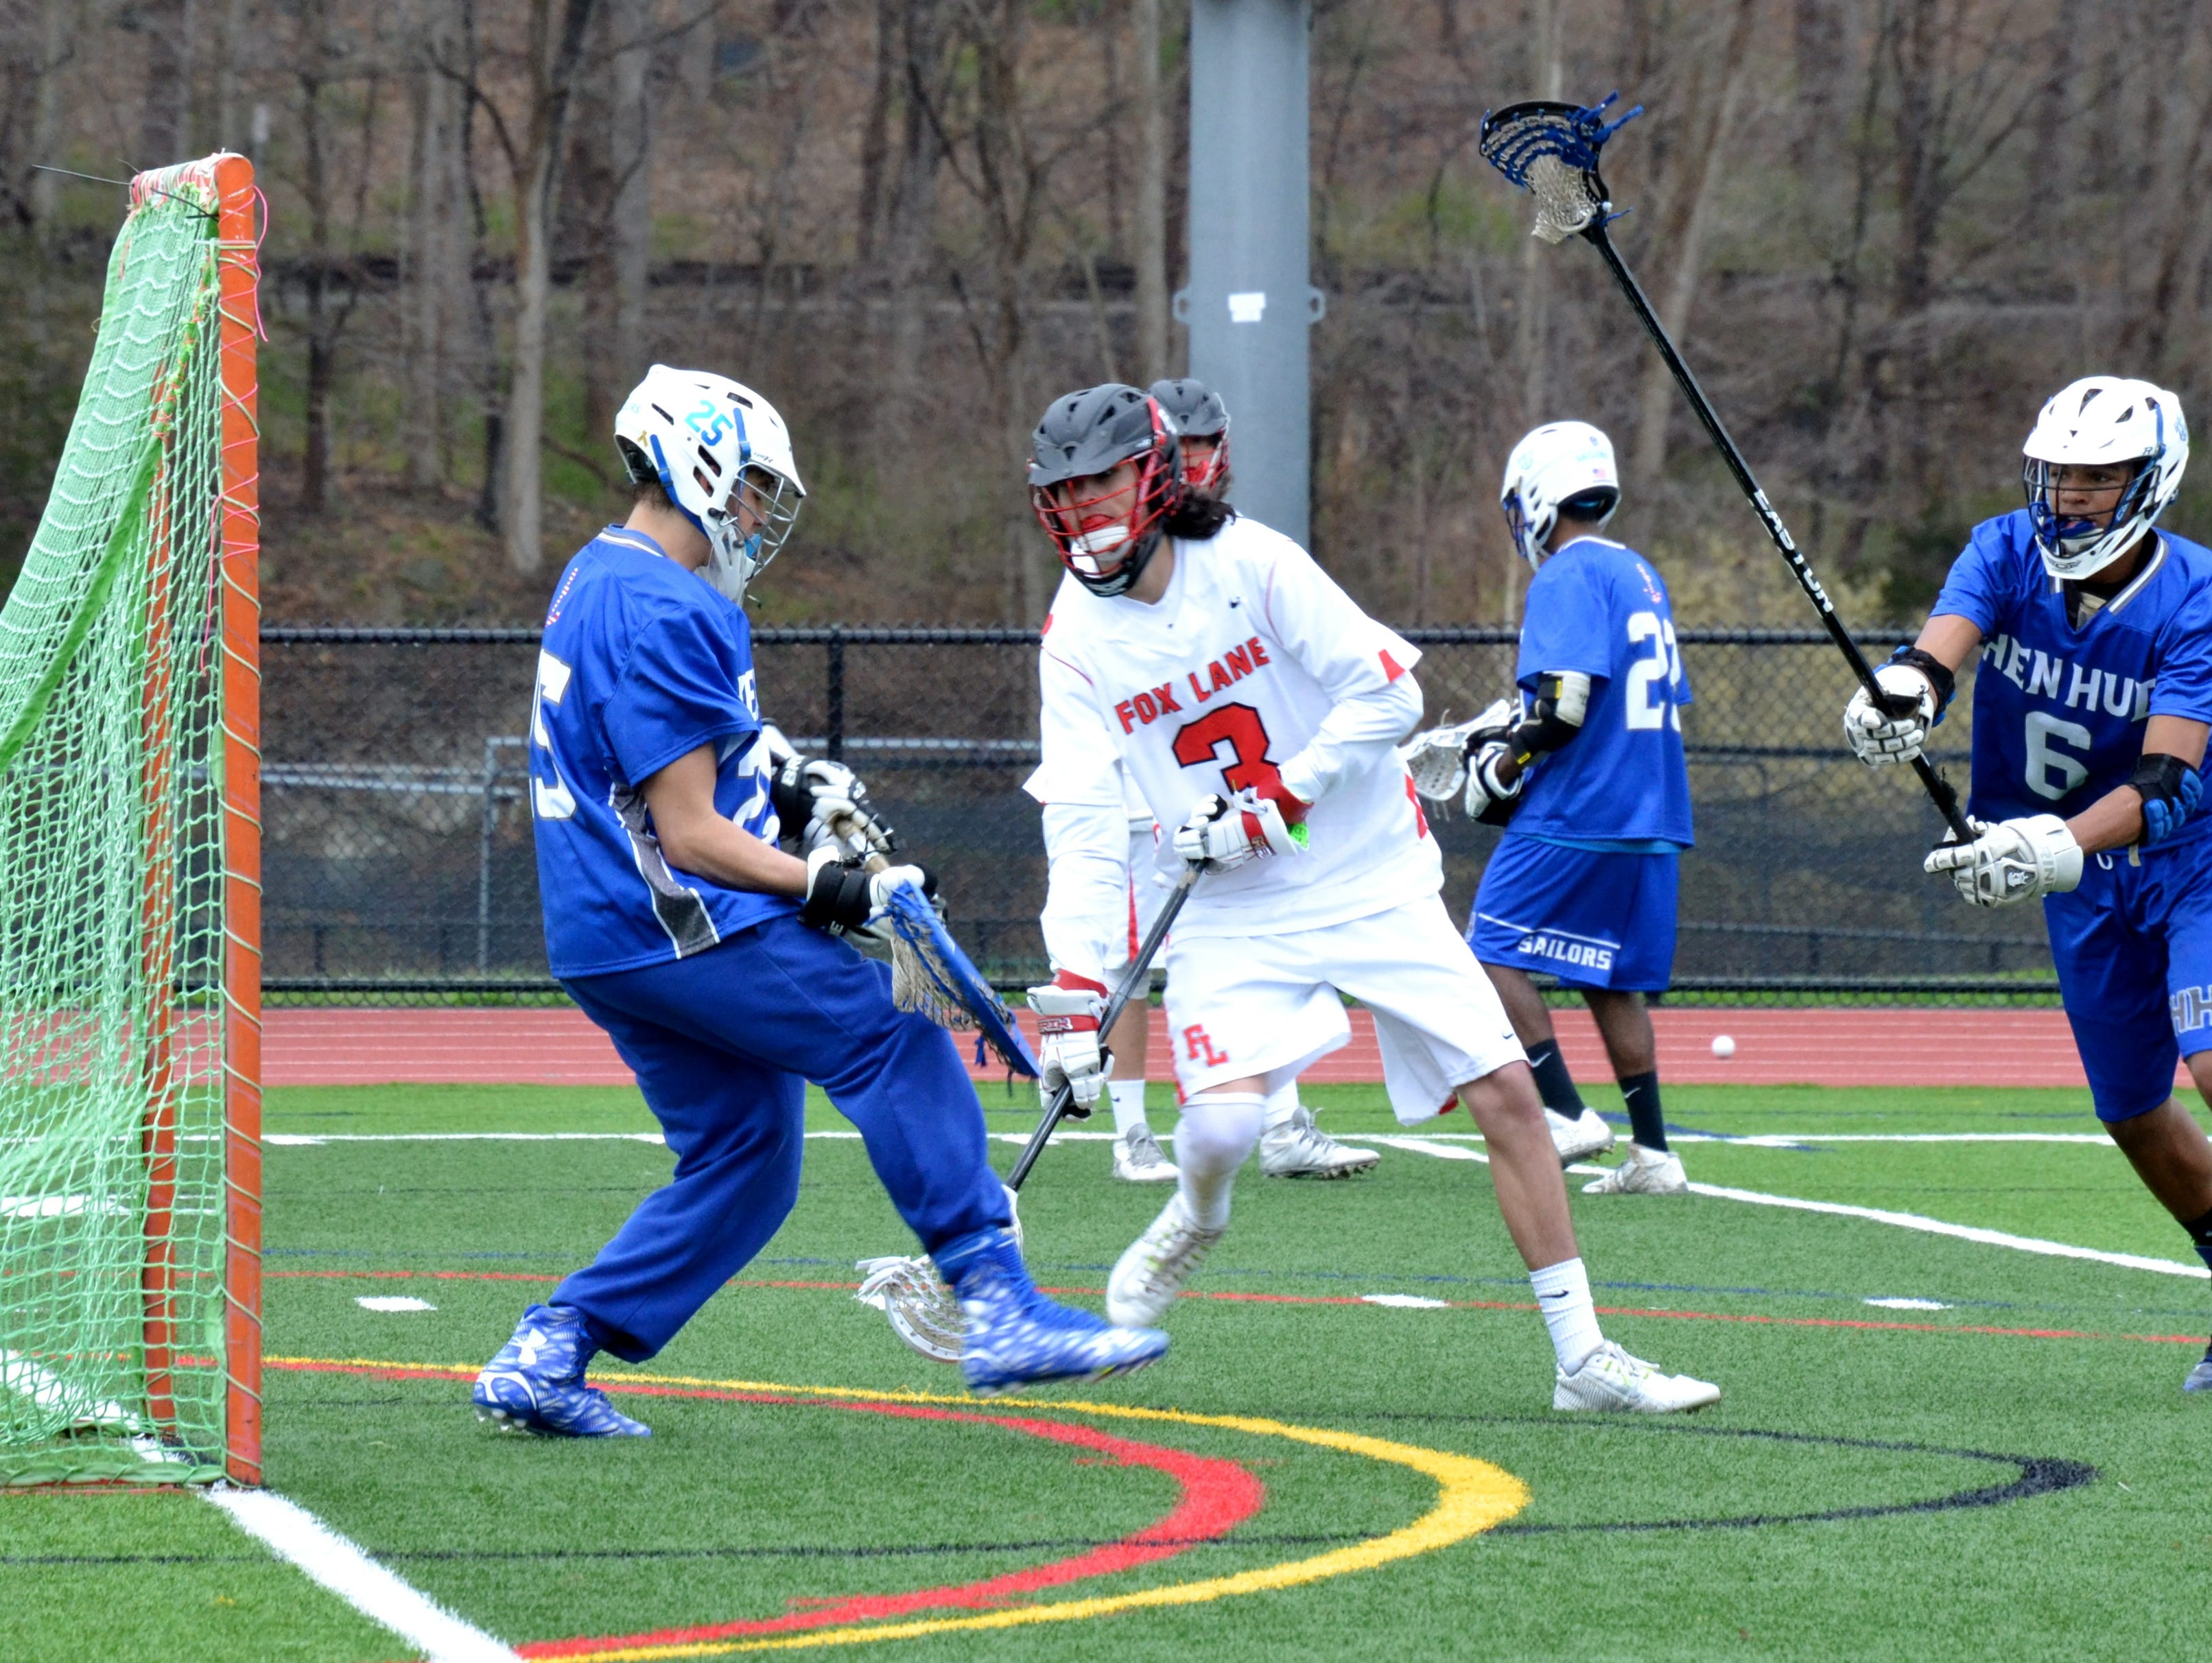 Fox Lane attackman Ryder Beitzel goes low and scores in the second half of the Foxes' 17-7 win over Hen Hud on Saturday.